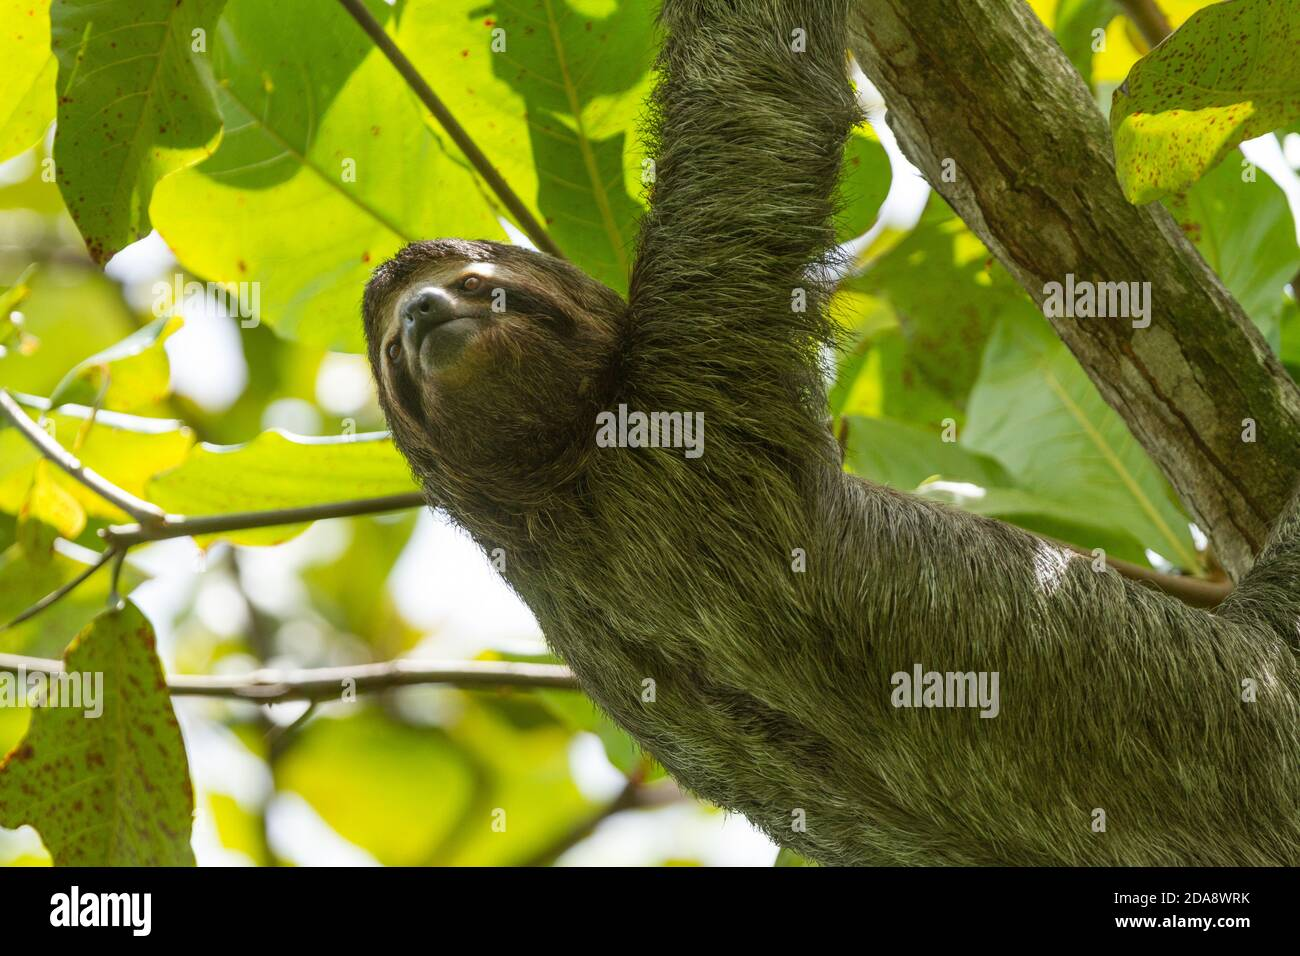 The Brown-throated Sloth, Bradypus variegatus, is a species of Three-toed Sloth found in Central and South America.  Shown here in Costa Rica.  They l Stock Photo